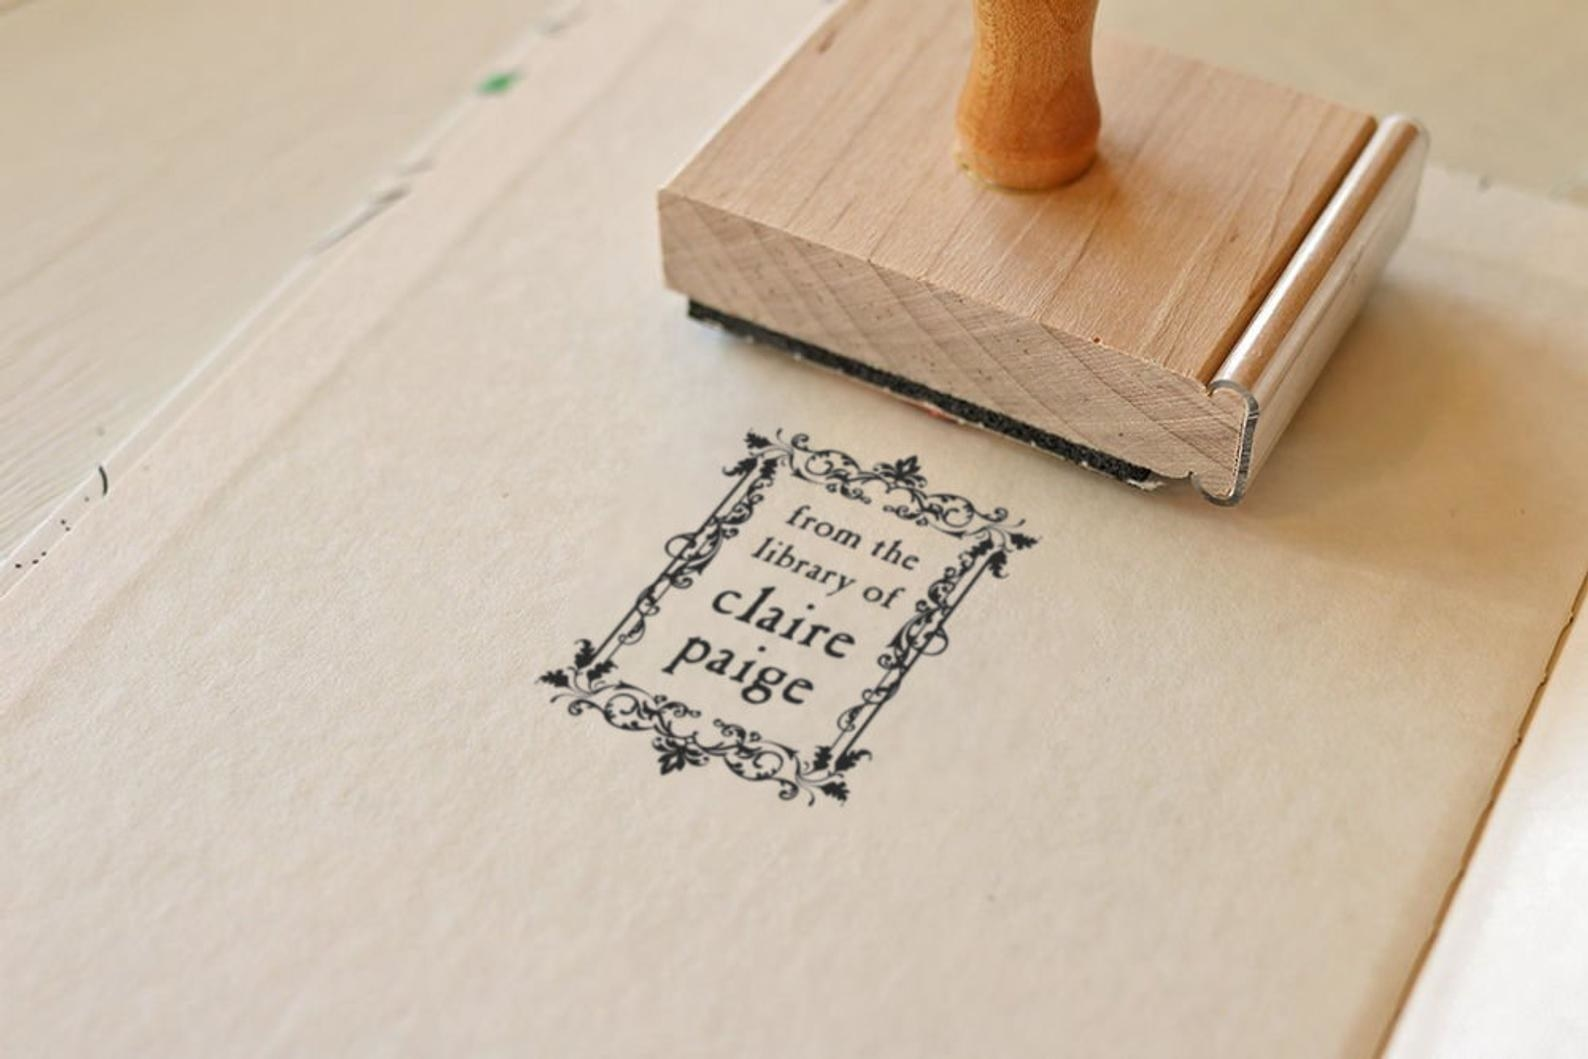 the personalized stamp